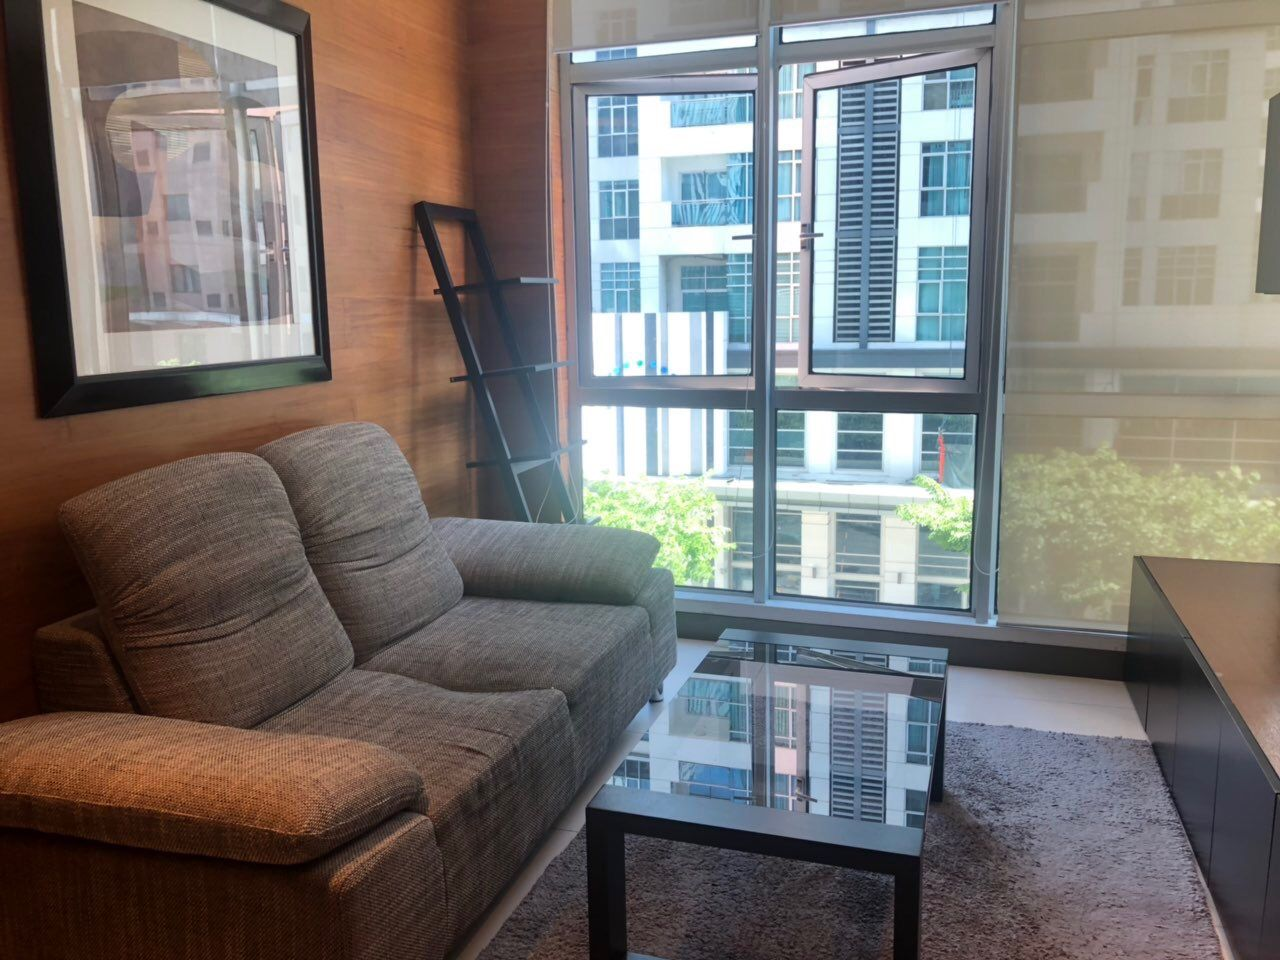 1 Bedroom Condo for Rent in BGC Taguig City, 49sqm, Blue